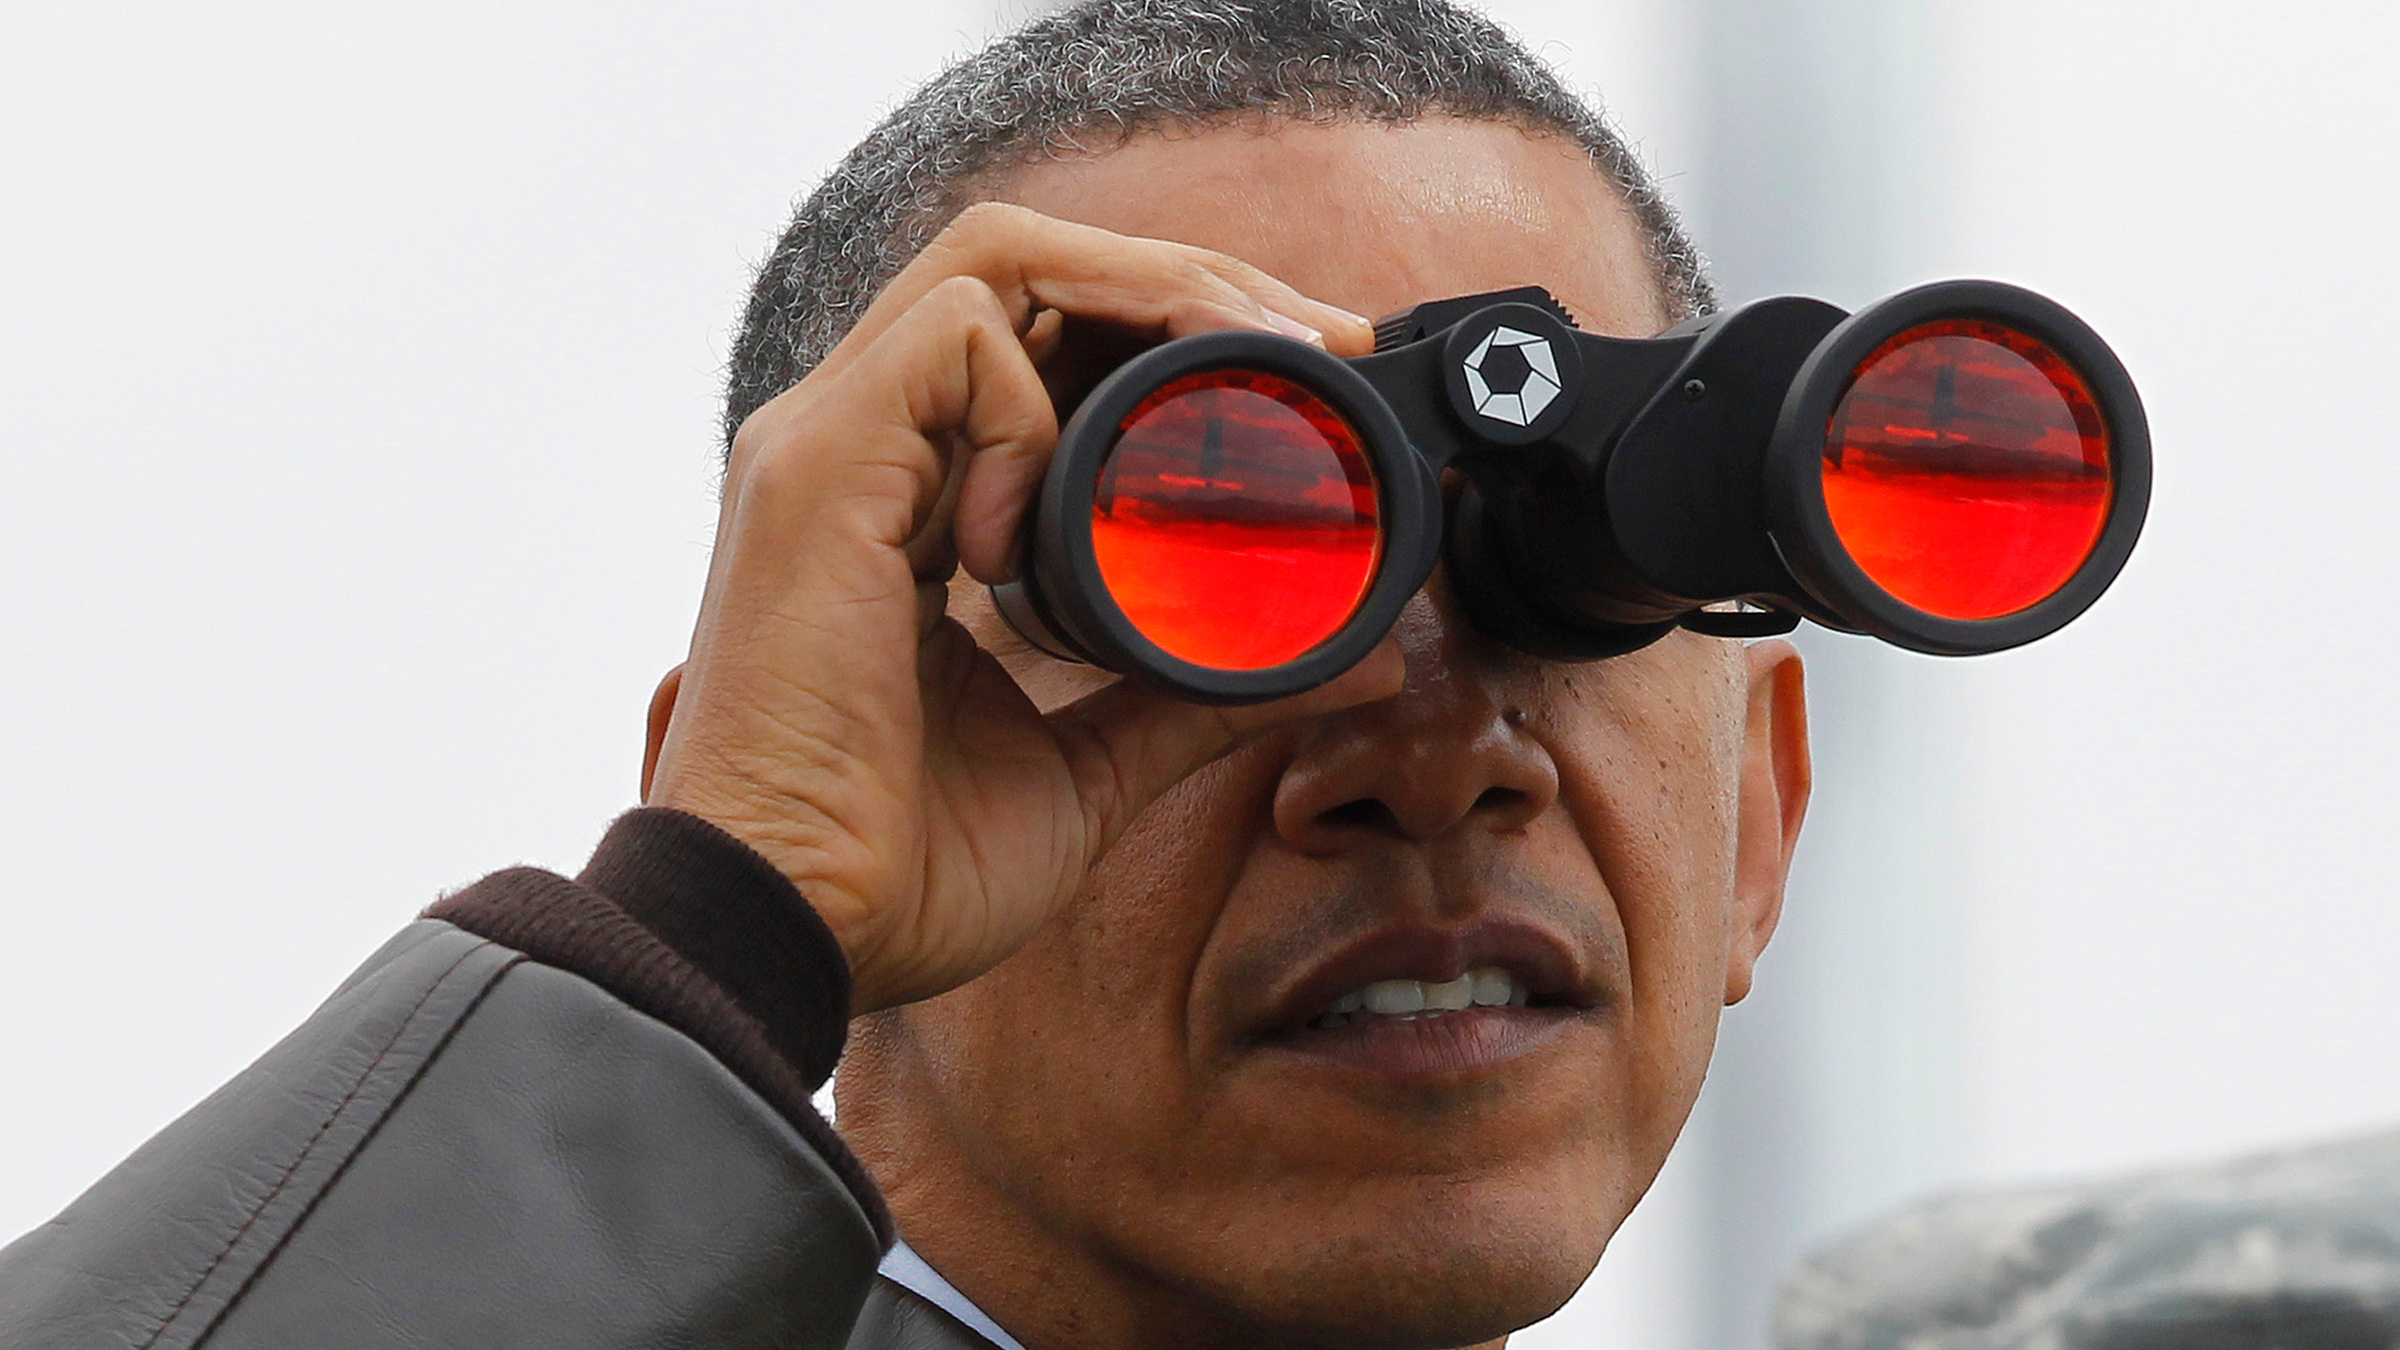 President Barack Obama looks through binoculars to see North Korea from Observation Post Ouellette in the Demilitarized Zone, the tense military border between the two Koreas, in Panmunjom, South Korea, Sunday, March 25, 2012.